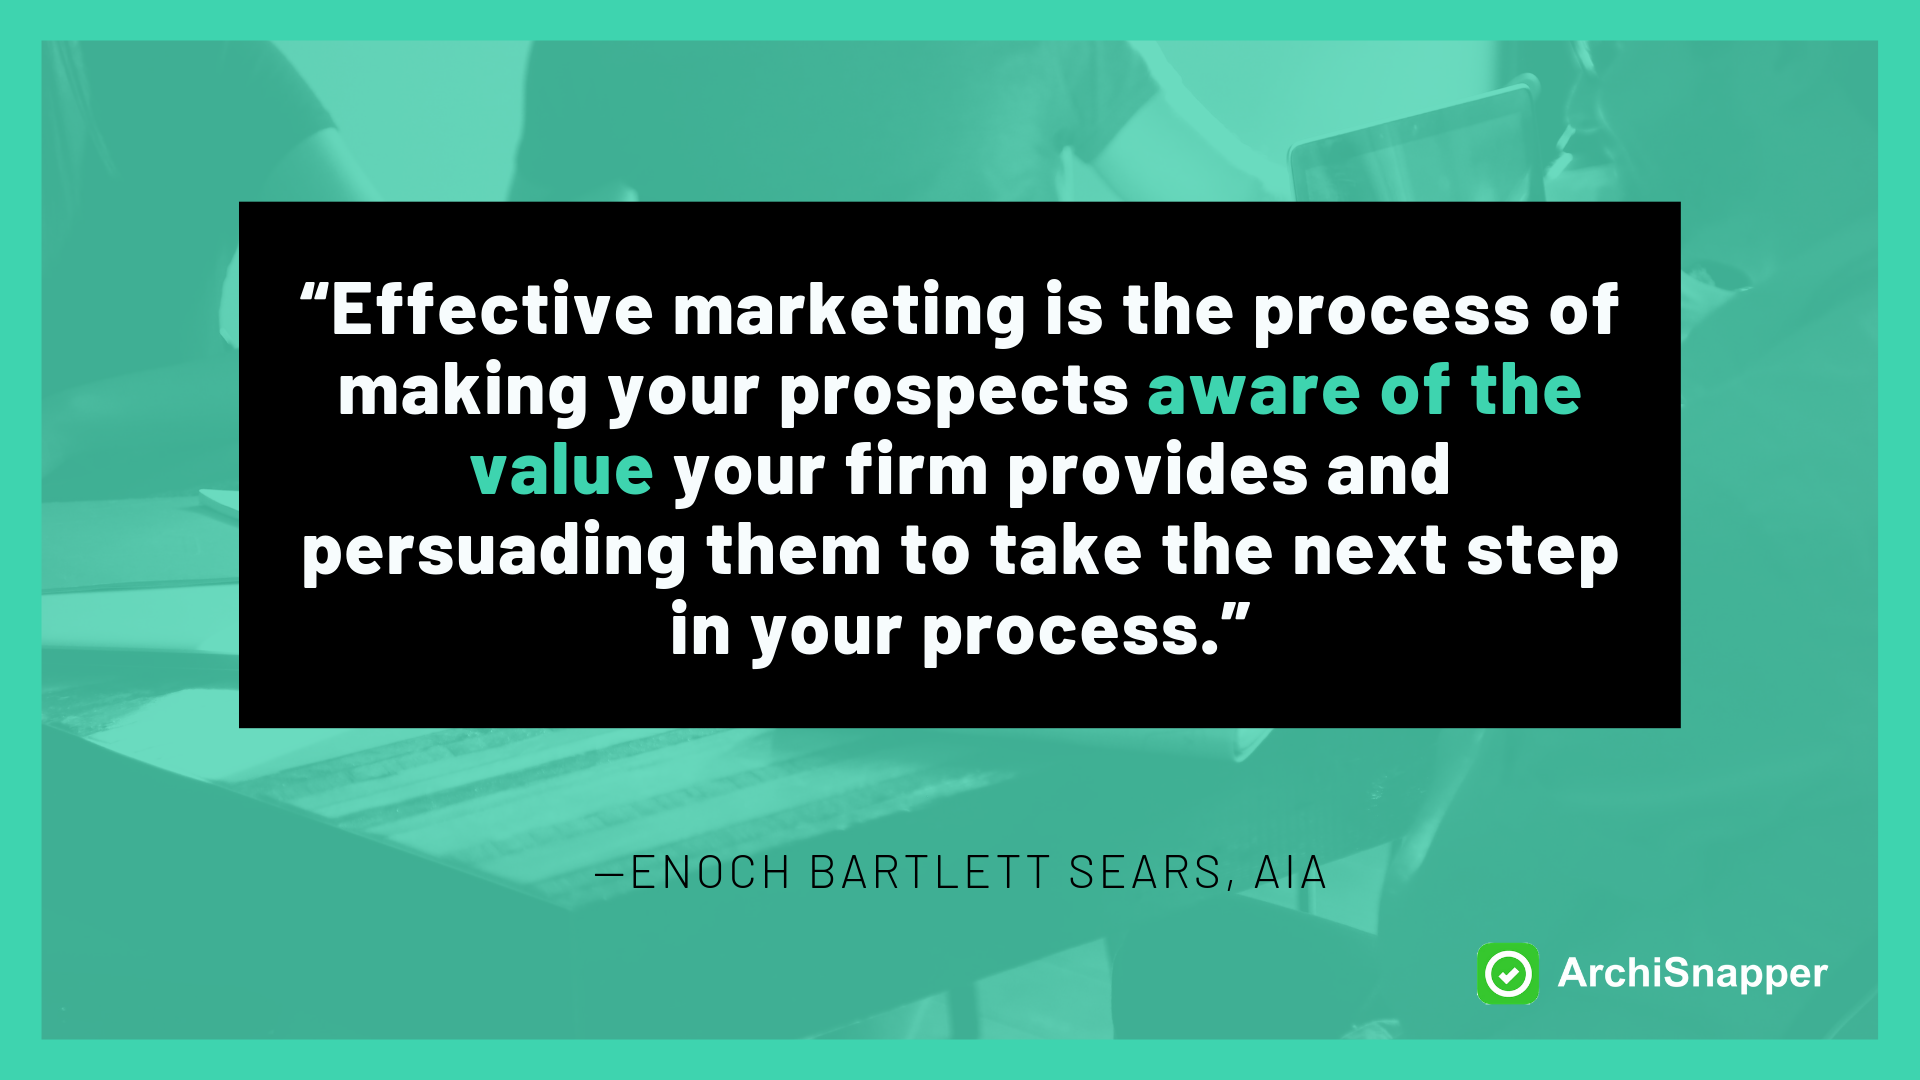 Enoch Bartlett Sears, AIA on marketing | ArchiSnapper